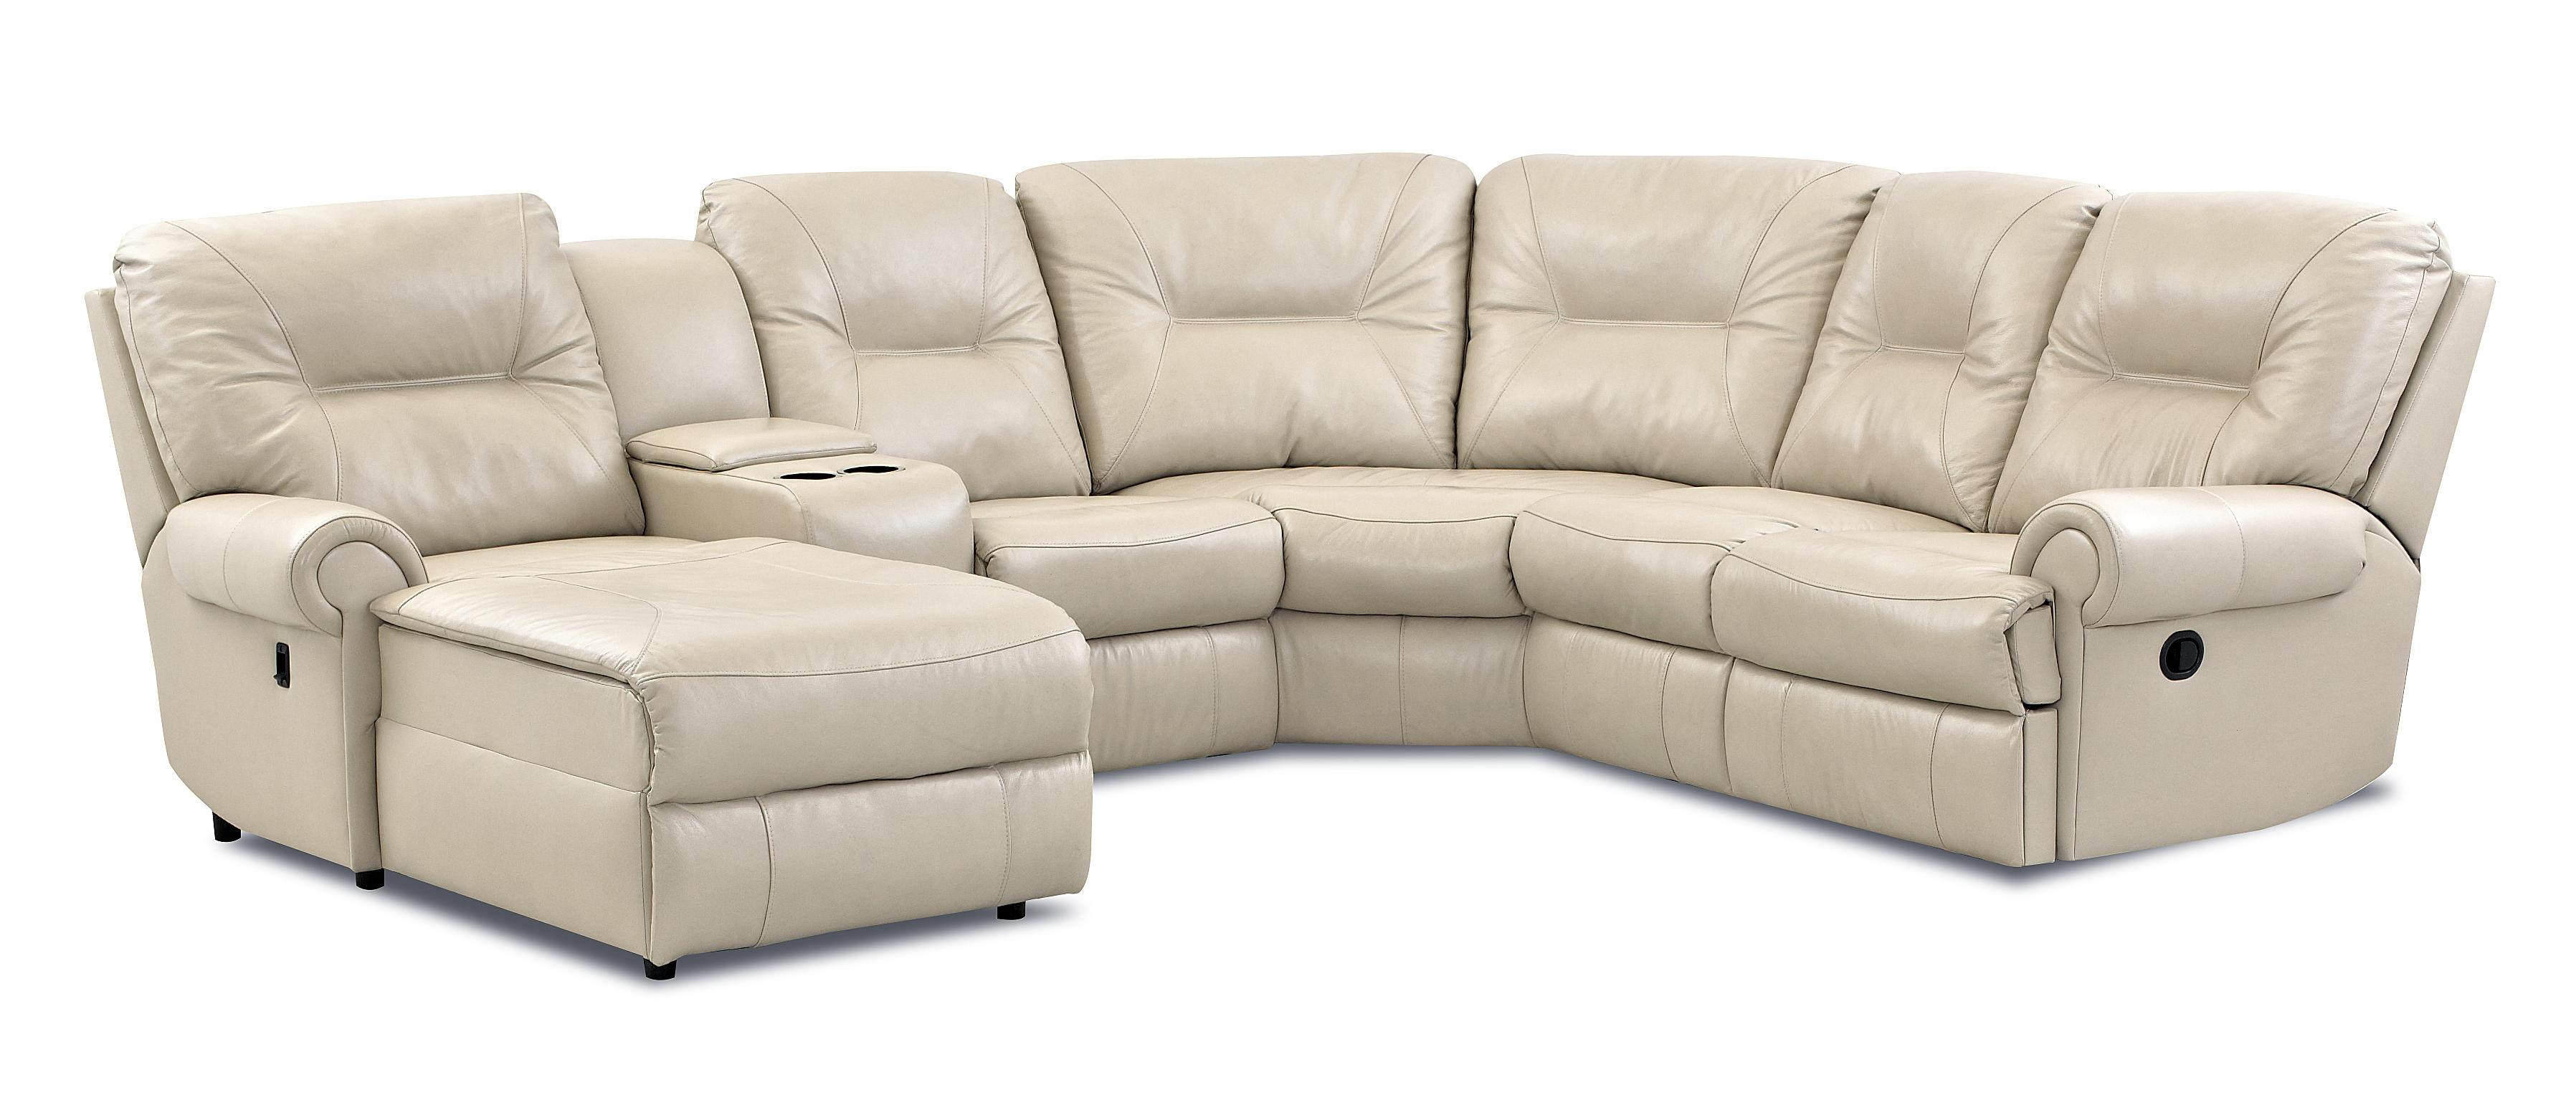 Klaussner roadster traditional reclining sectional sofa for Traditional sectional